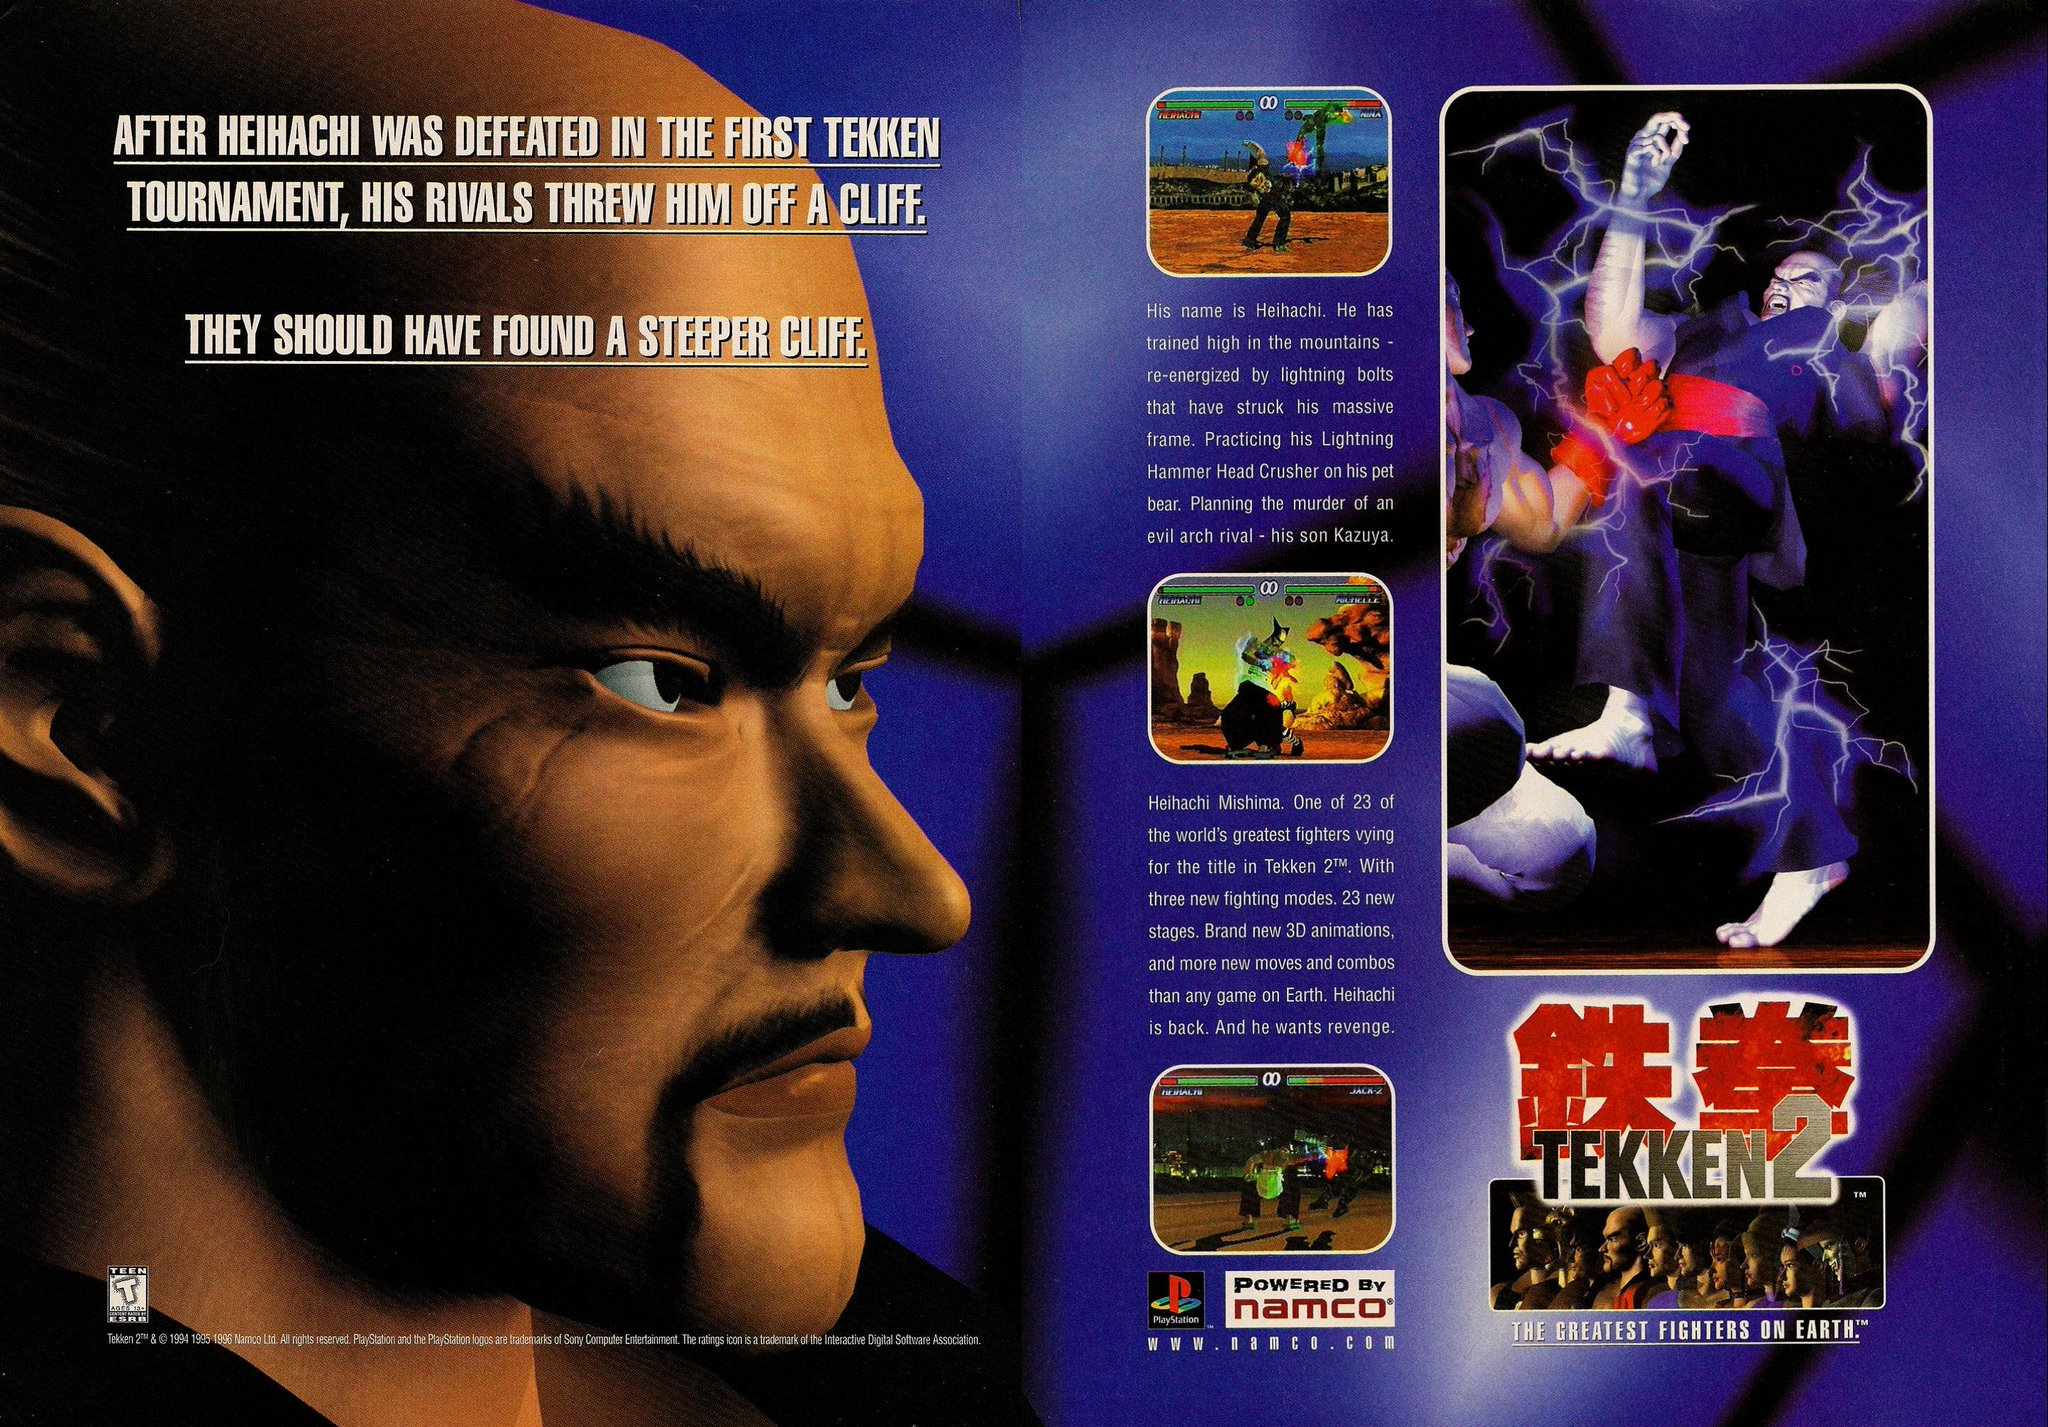 nba jam the book on twitter parallel 1996 print ads for tekken 2 on the playstation ft heihachi mishima and nina williams nba jam the book on twitter